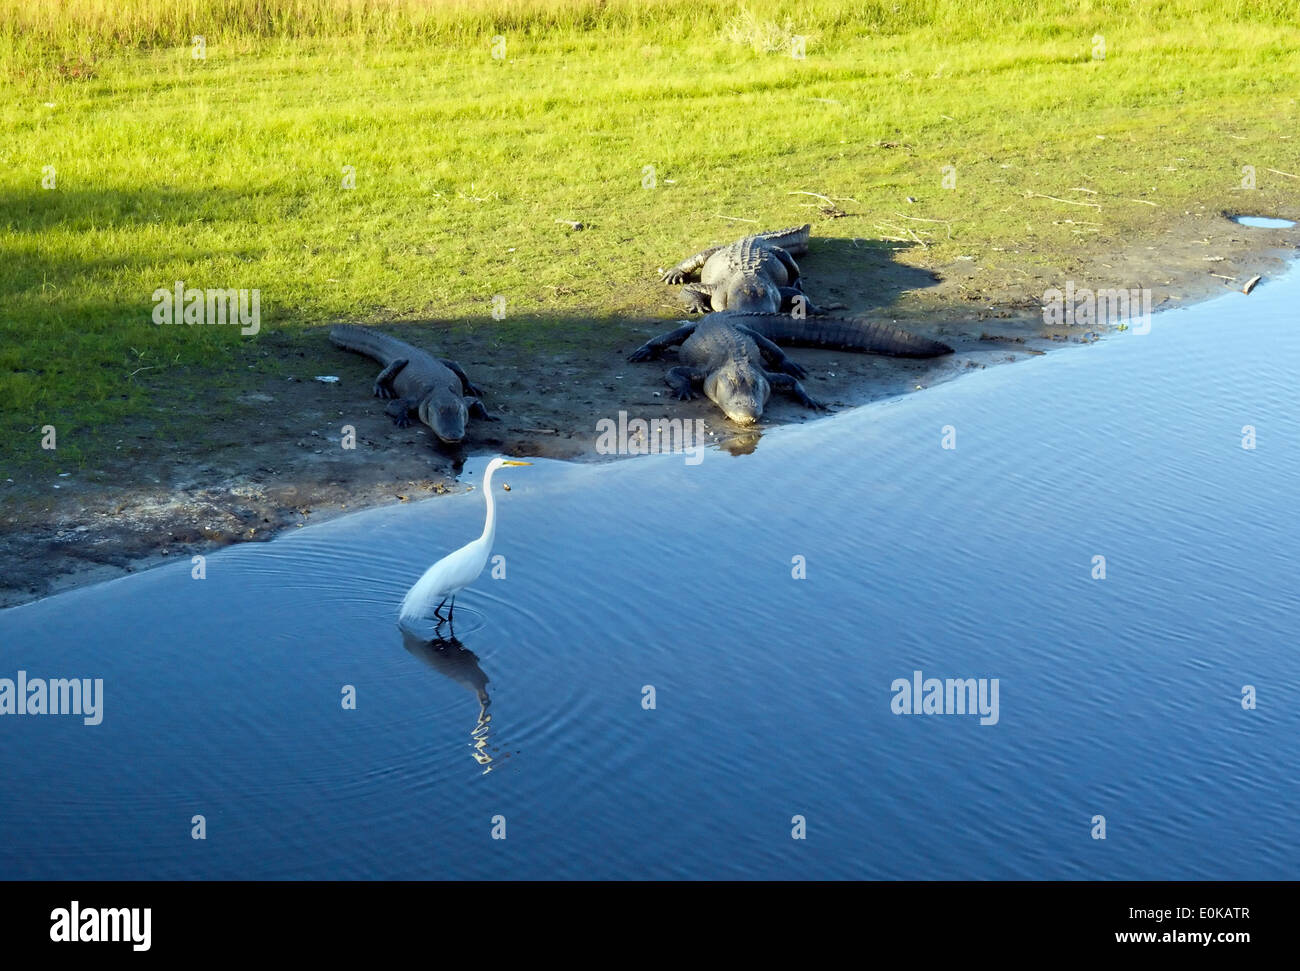 It's risky business for the egret to wander so close to an American Alligator. - Stock Image